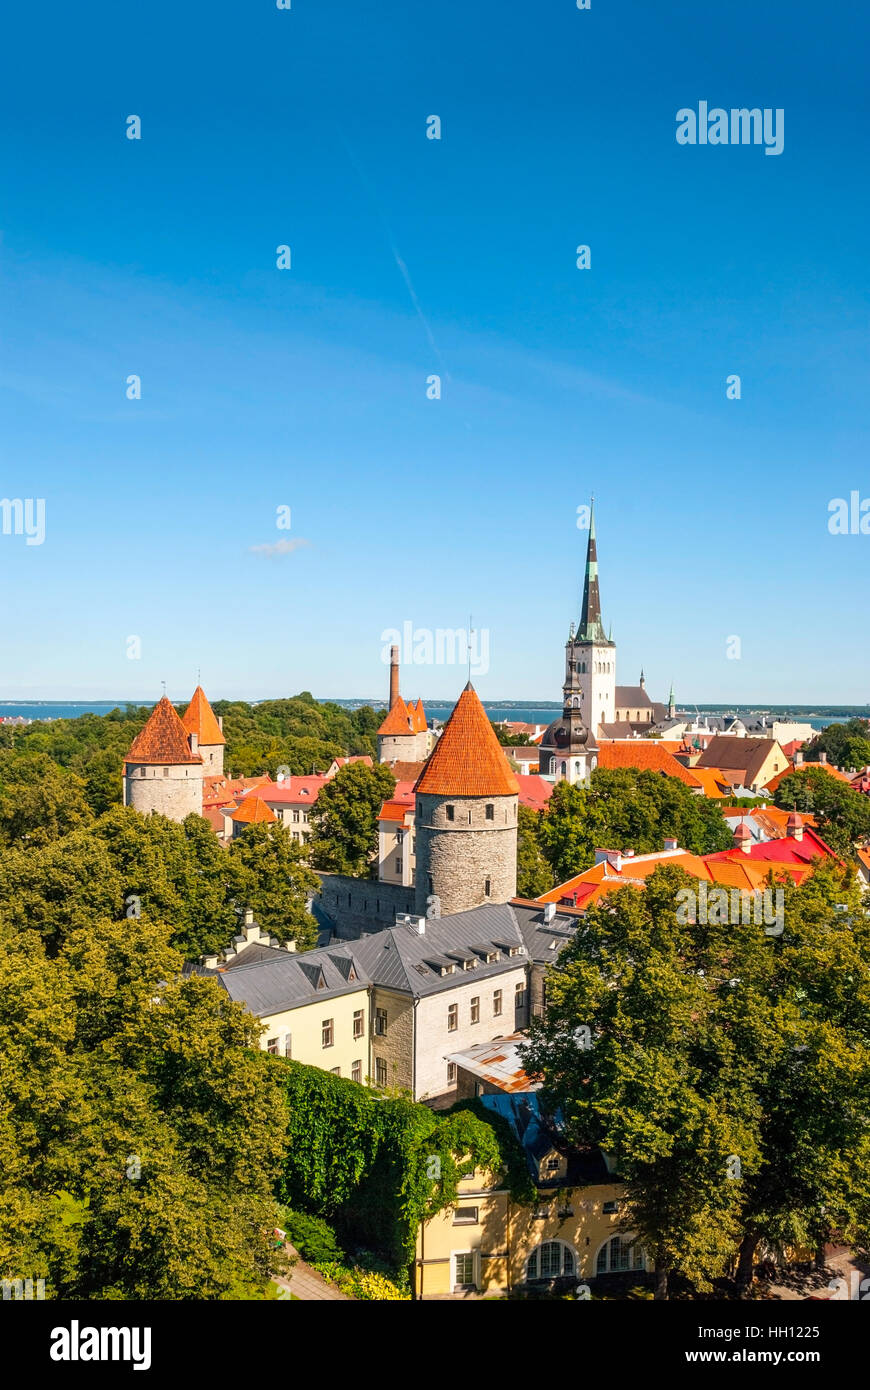 Cityscape of old town Tallinn with bright roofs in sunlight, Estonia - Stock Image